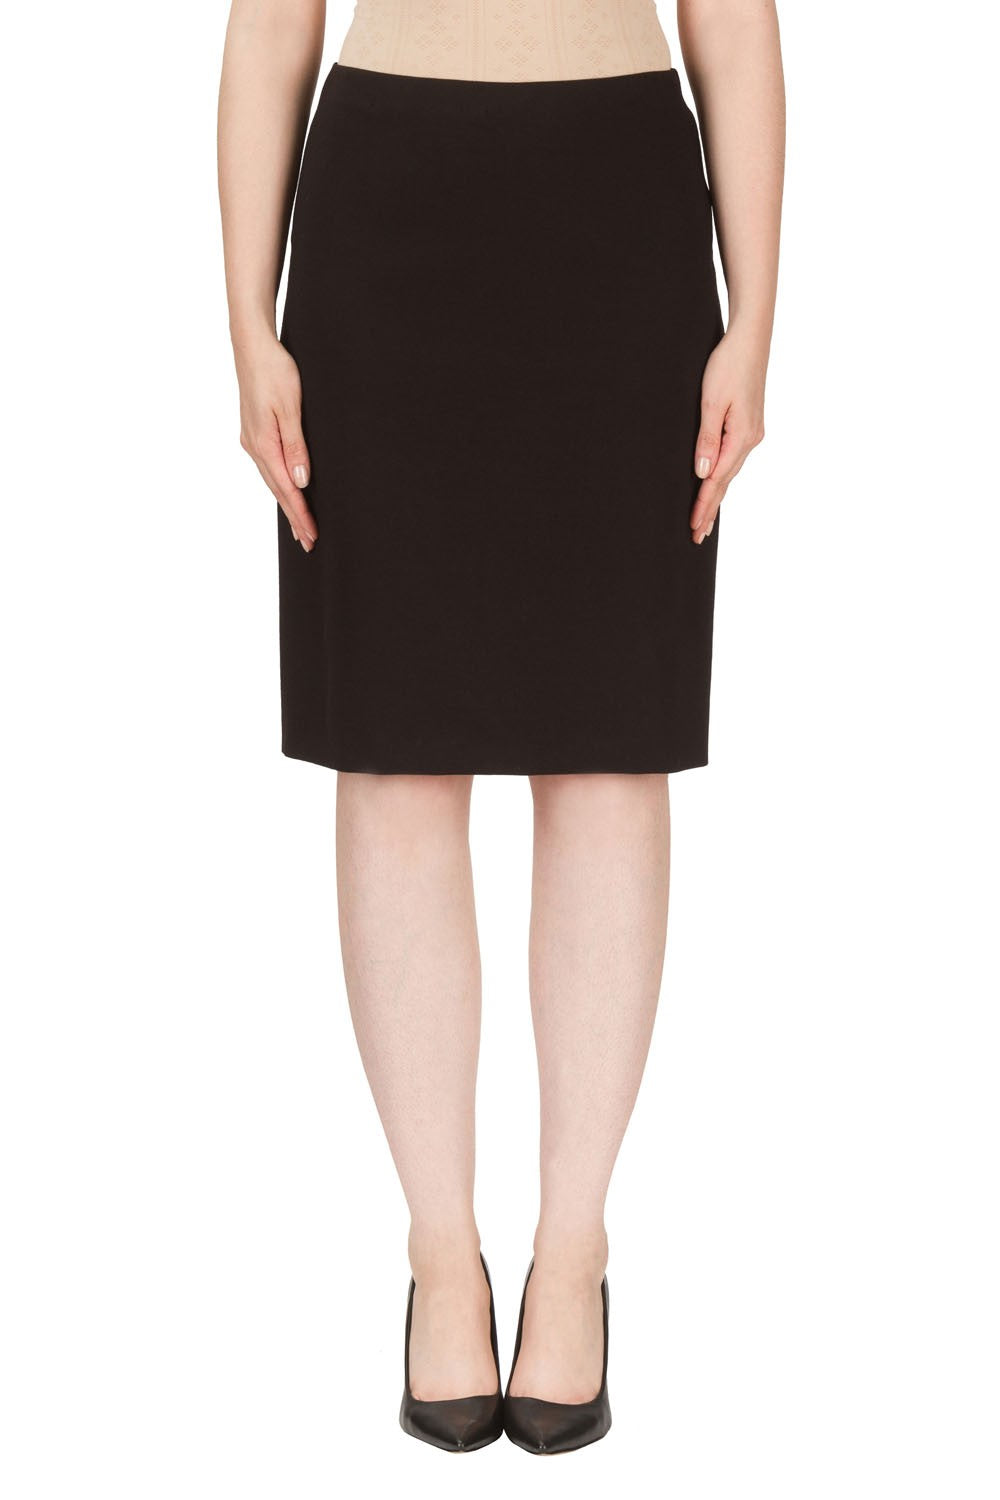 Joseph-Ribkcoff-straight-black-petite-skirt.